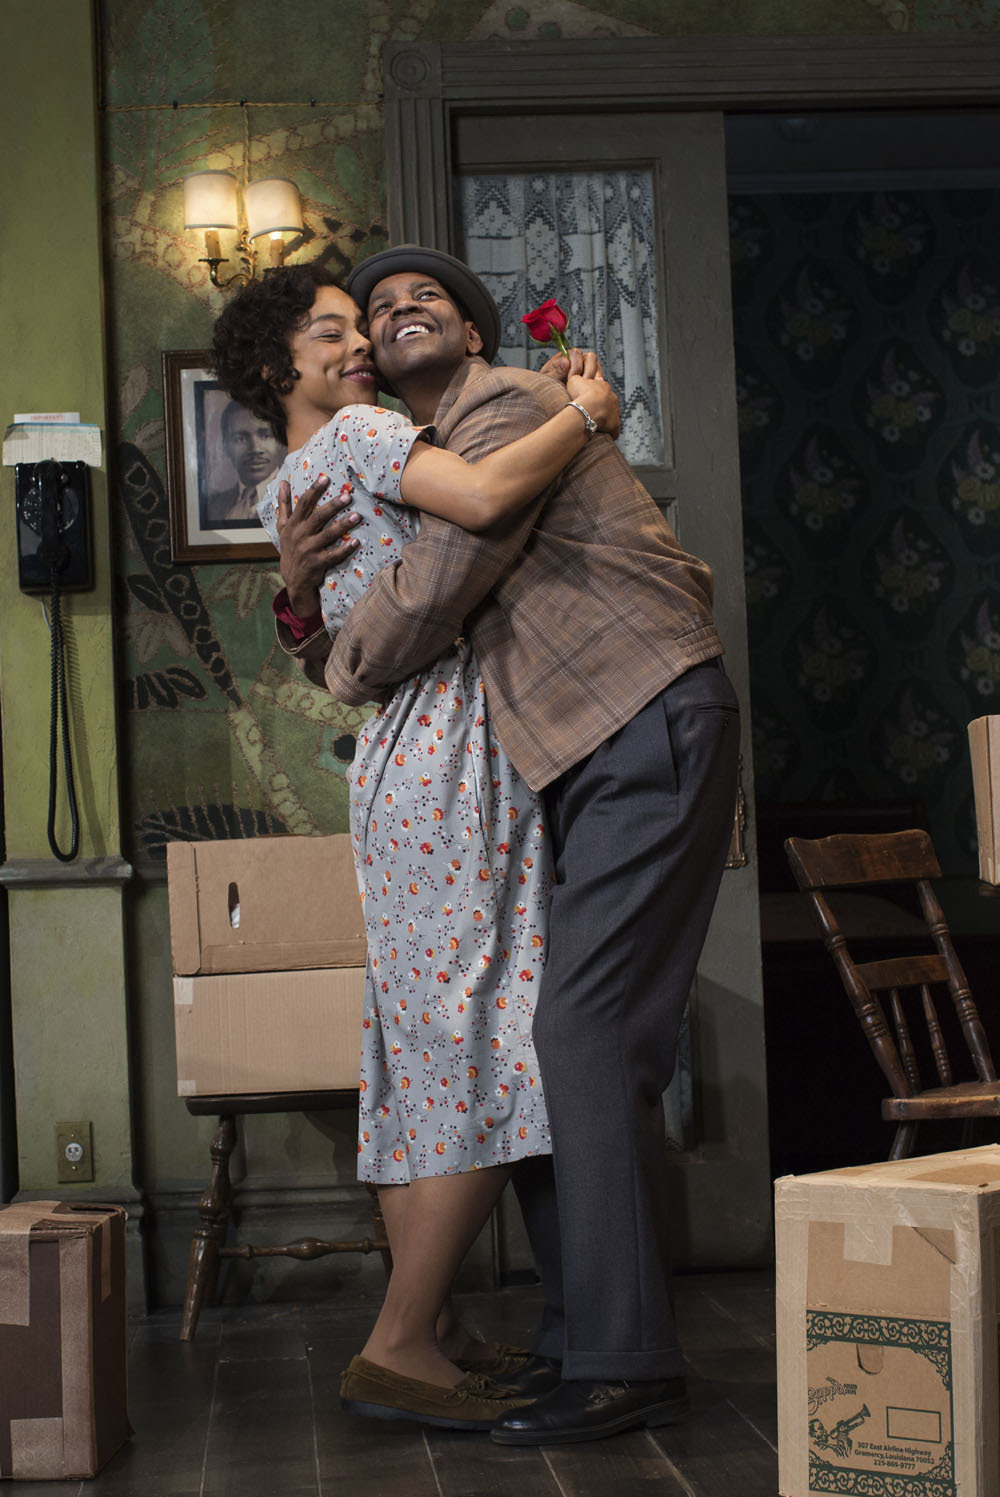 a raisin in the sun american A raisin in the sun is a play written by lorraine hansberry the primary focus of the play is the american dream the american dream is one's conception of a better life.